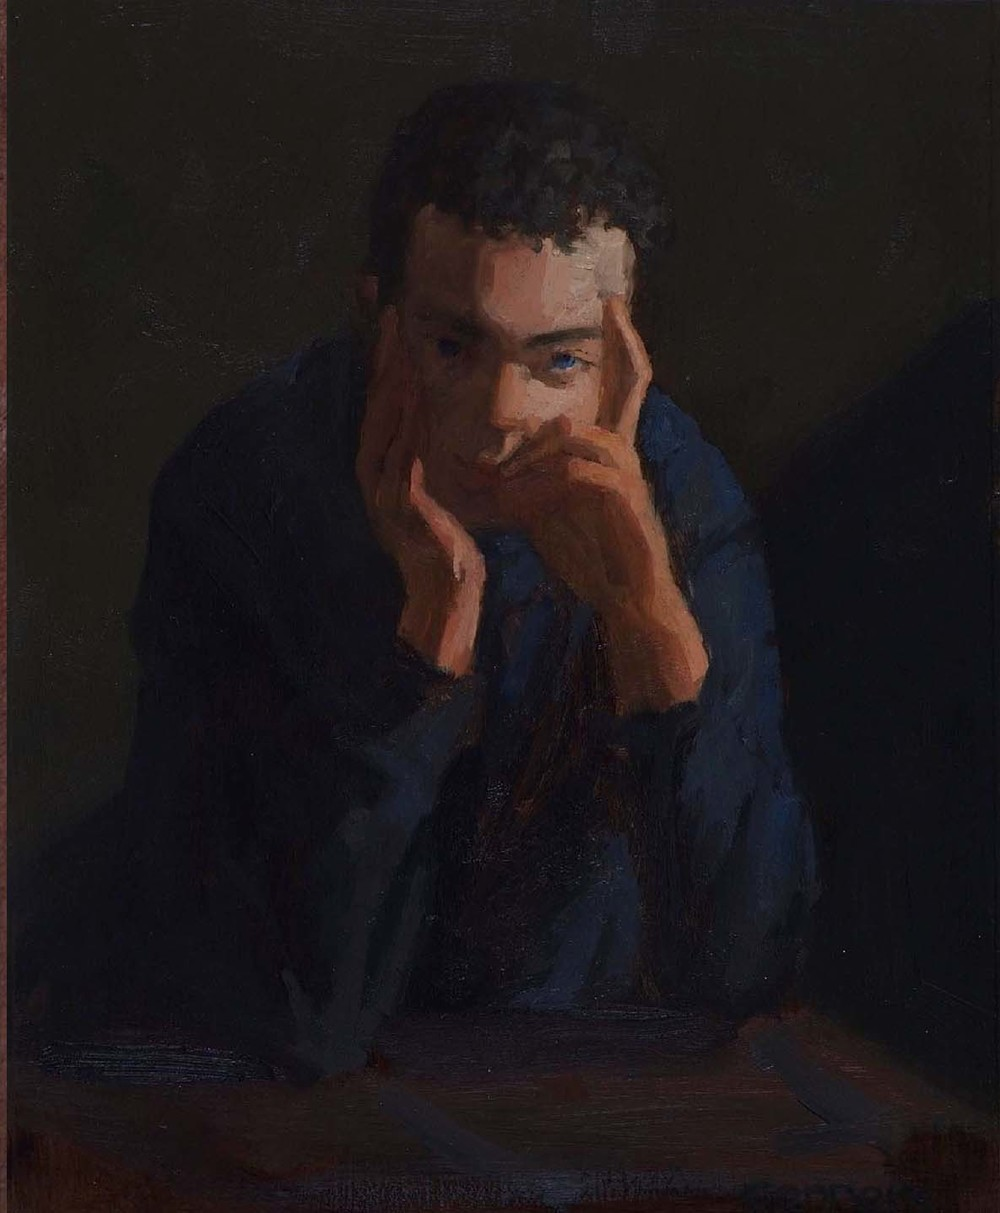 Portrait of A. D., 10.5 x 8.2 inches, oil on prepared paper